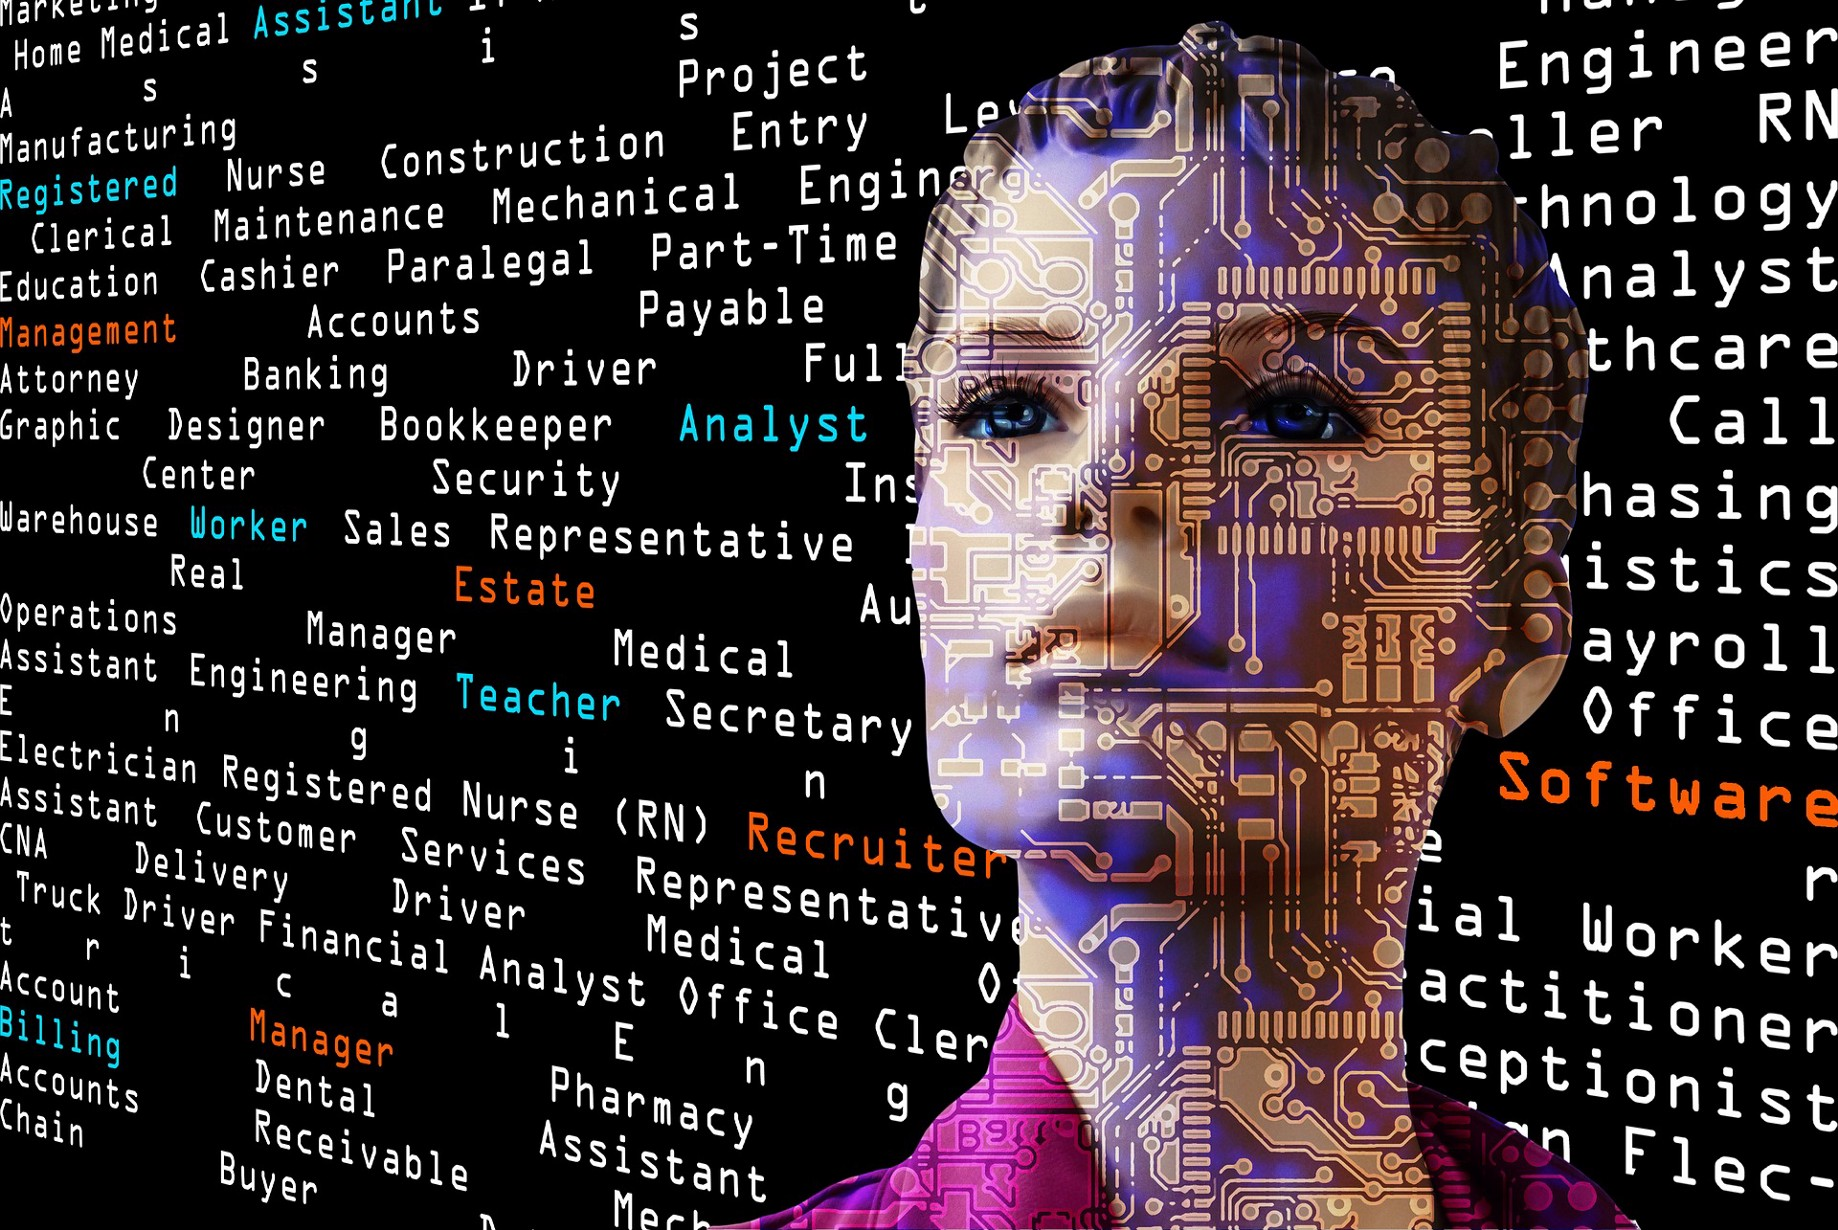 Artificial Intelligence: the impact on employment and the workforce